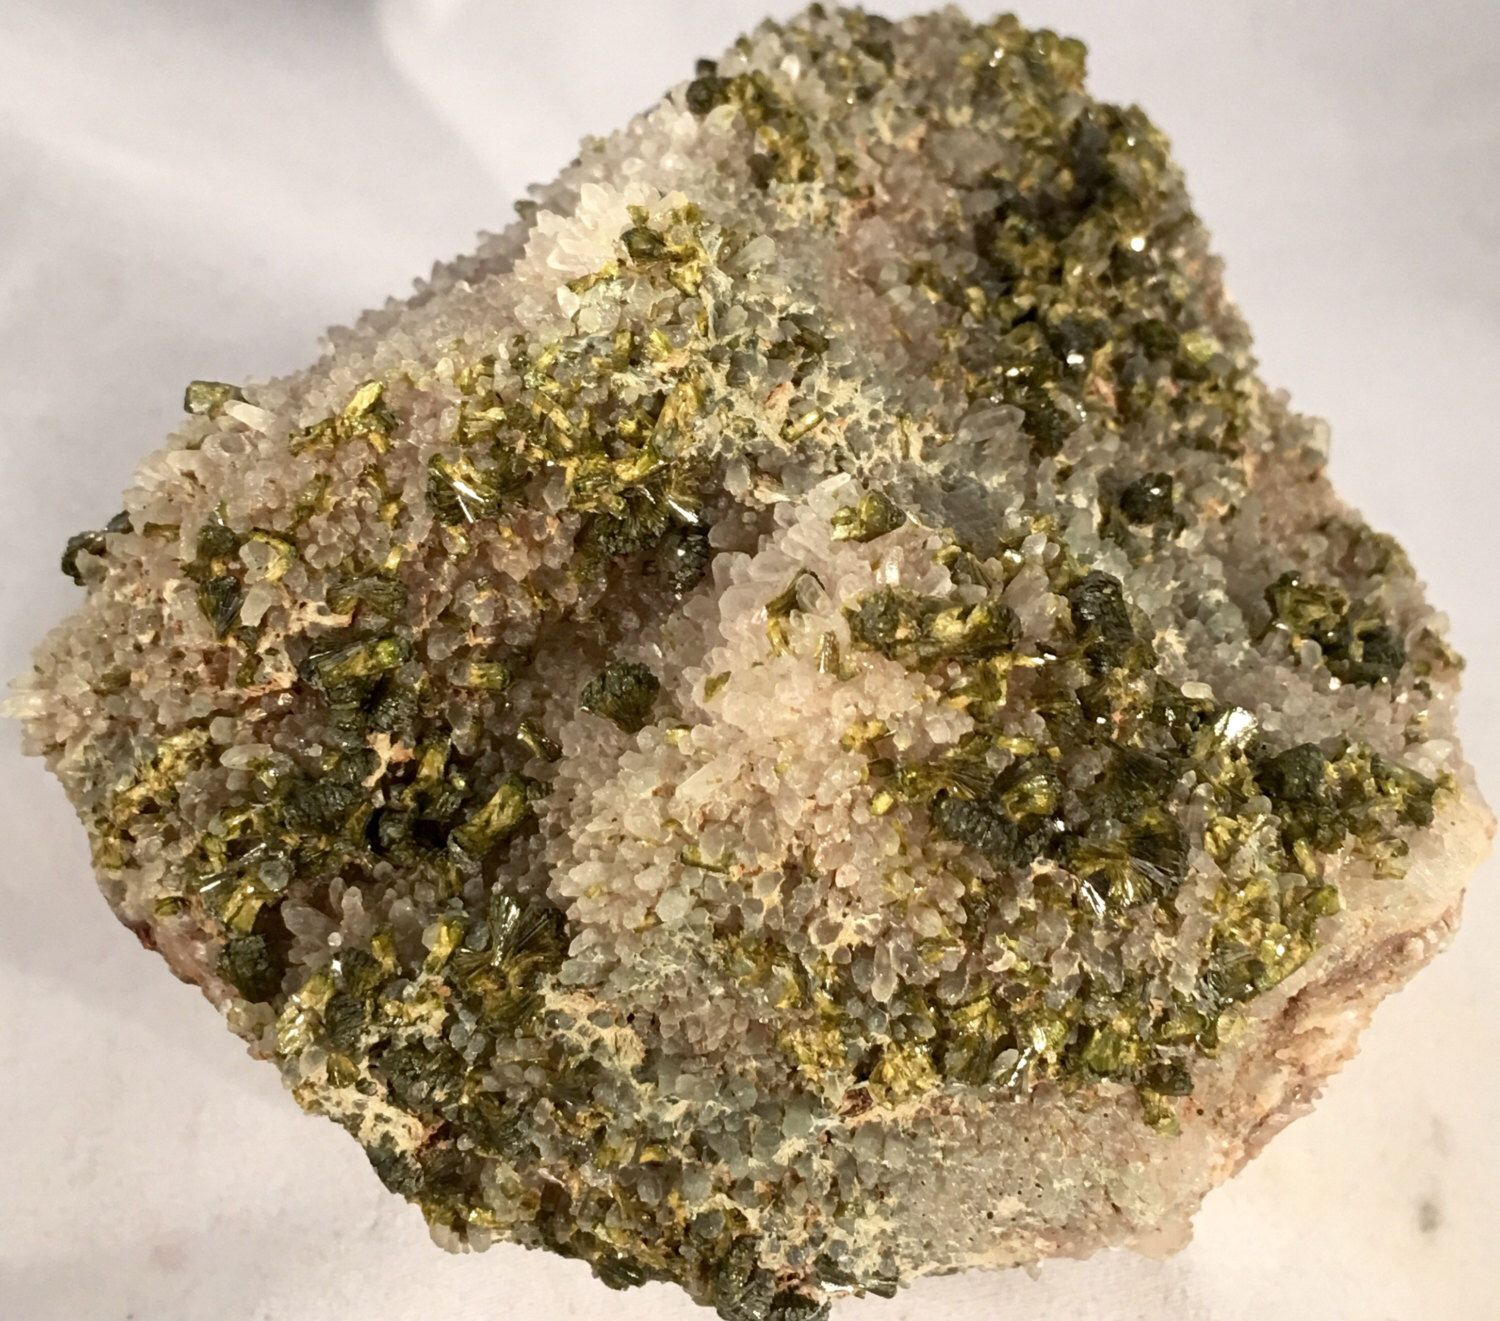 Fantastic Enormous Cluster of Fibrous Epidote Crystals and Terminated Quartz Crystals on Original Matrix by GEMandM on Etsy https://www.etsy.com/listing/387175272/fantastic-enormous-cluster-of-fibrous